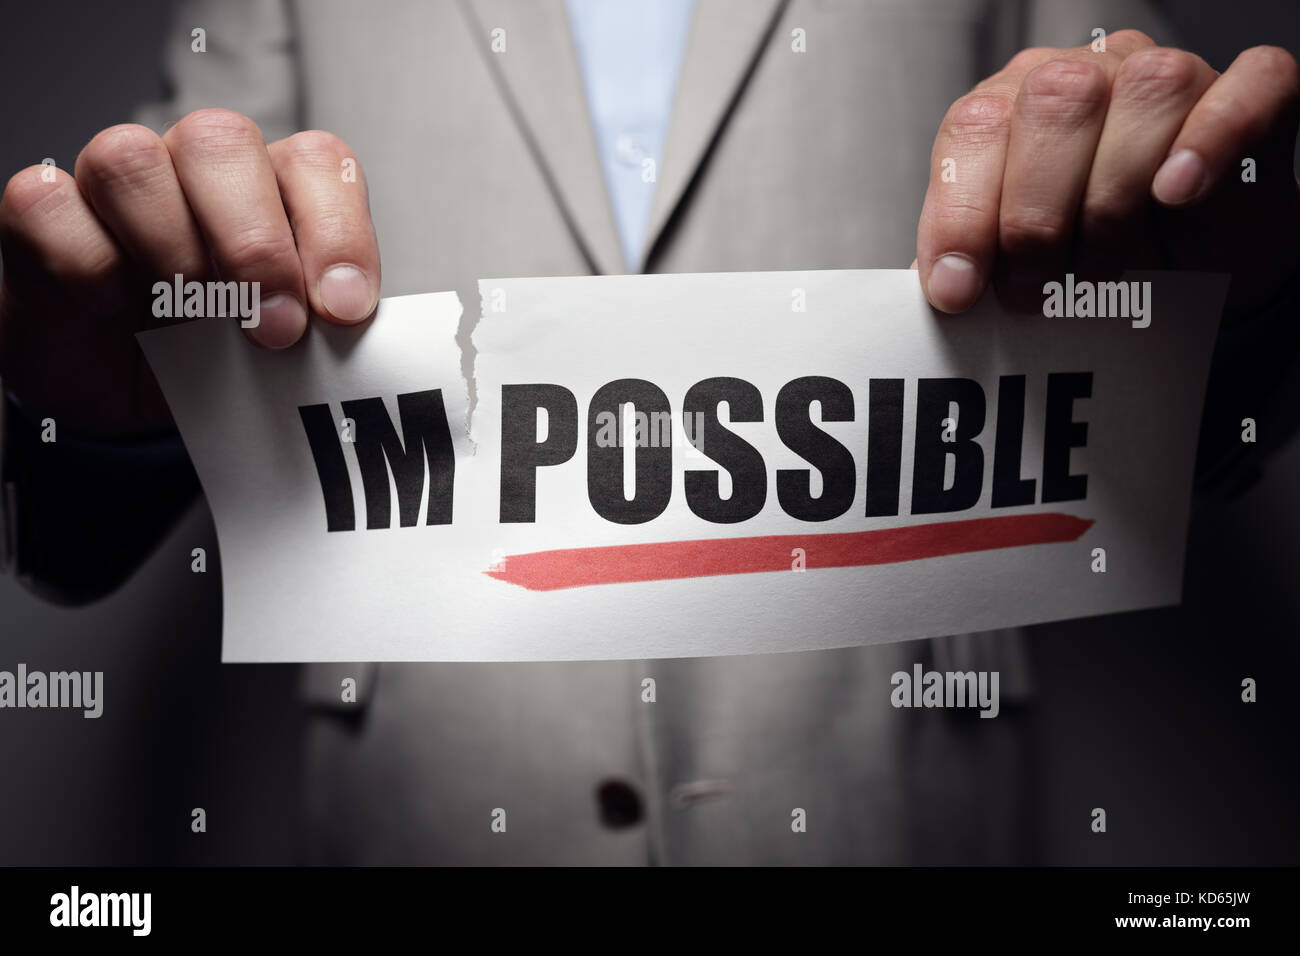 Businessman tearing the word impossible to make possibe concept for self belief, positive attitude and  motivation - Stock Image